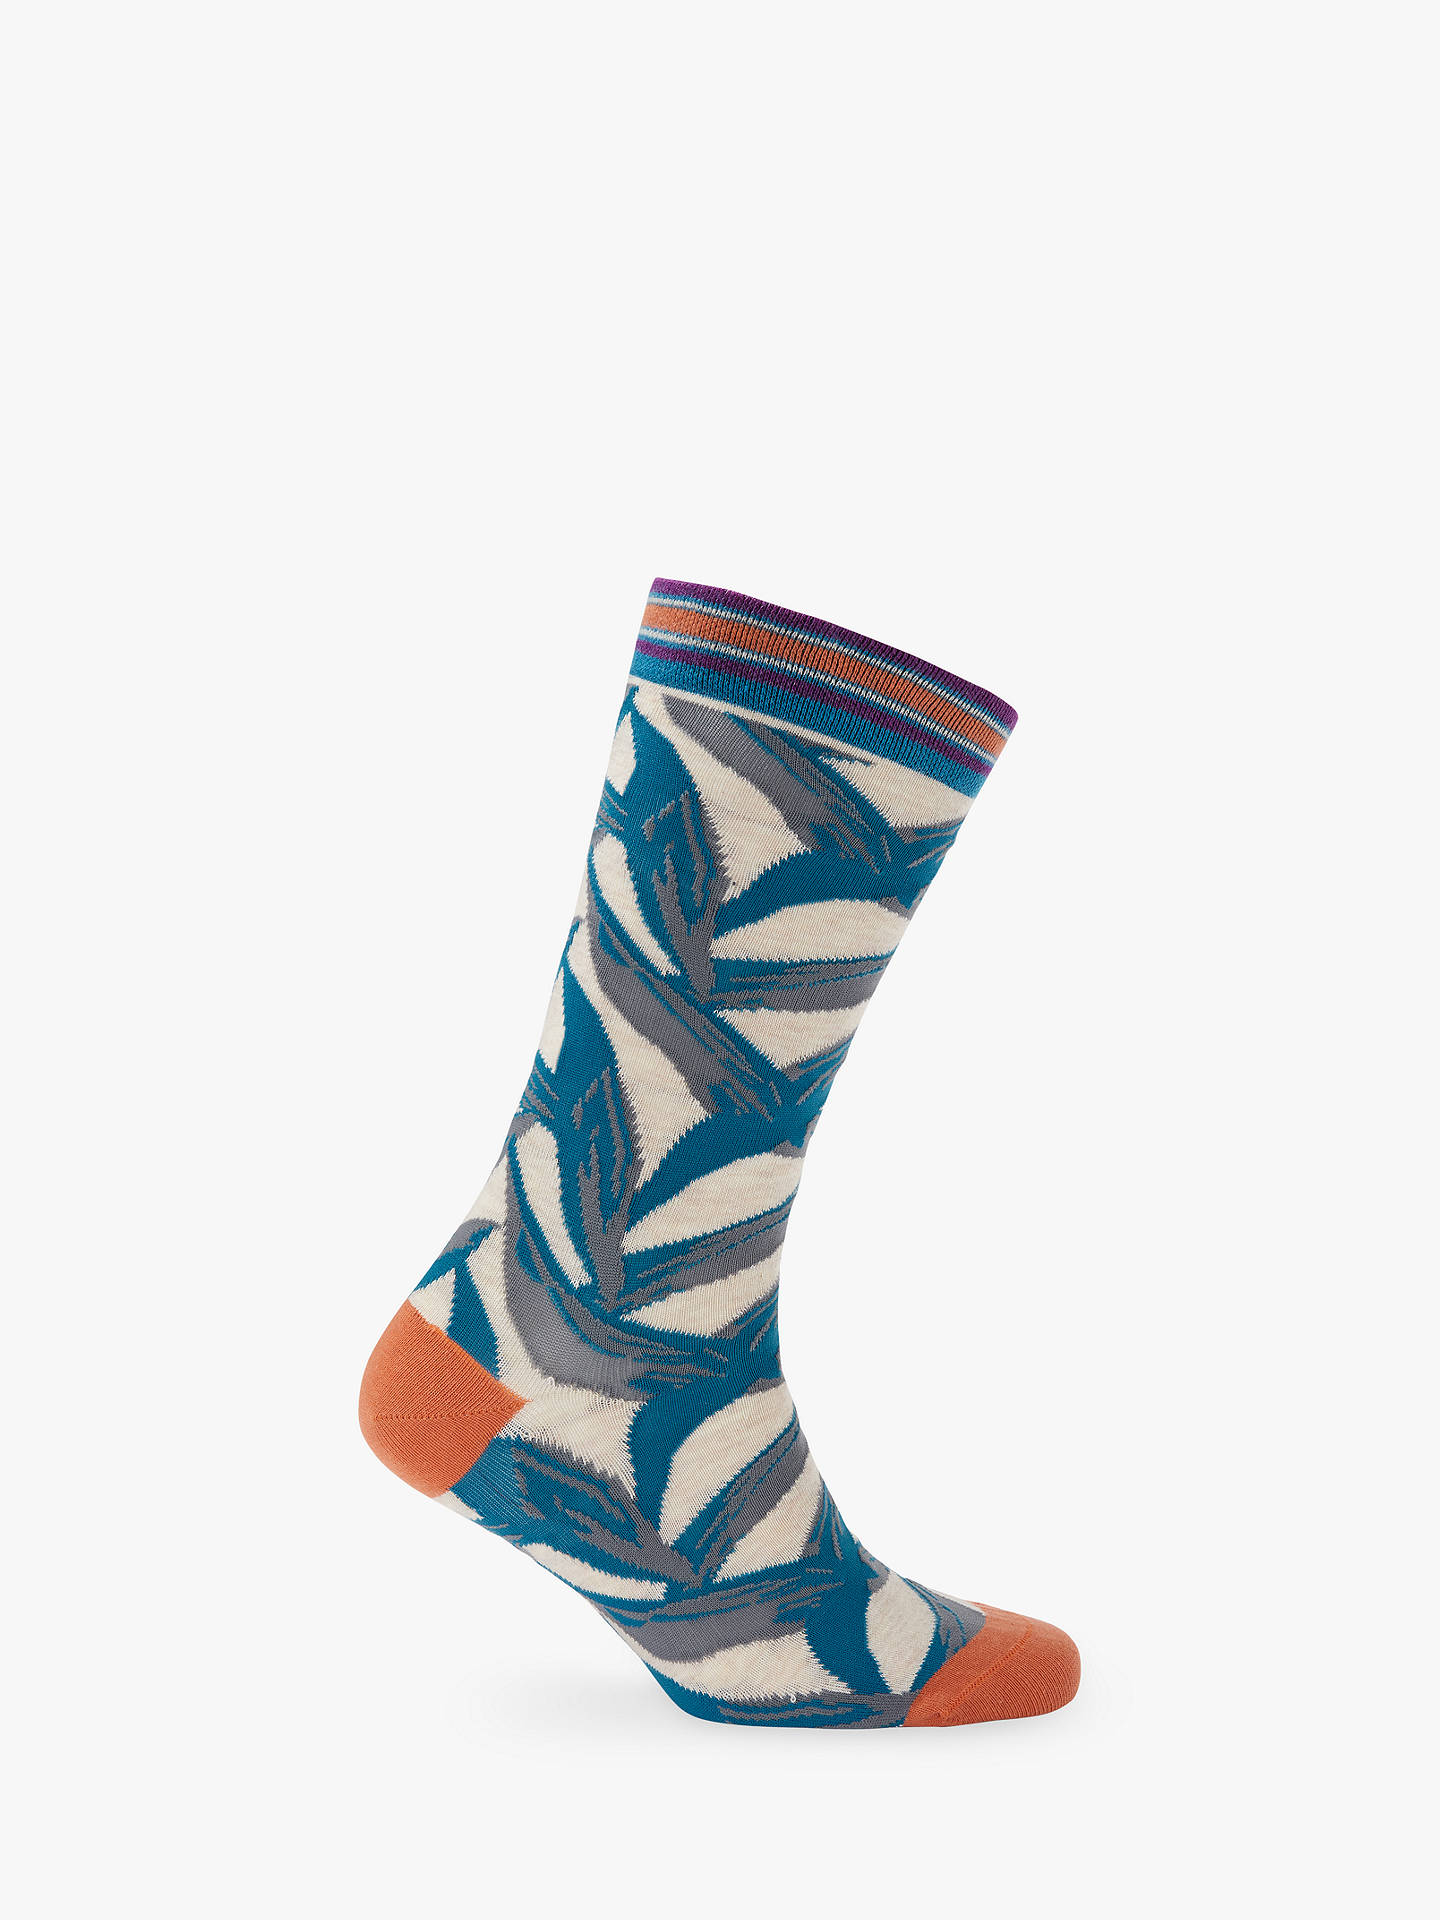 BuyTed Baker Leonin Leaf Socks, One Size, Teal Blue Online at johnlewis.com